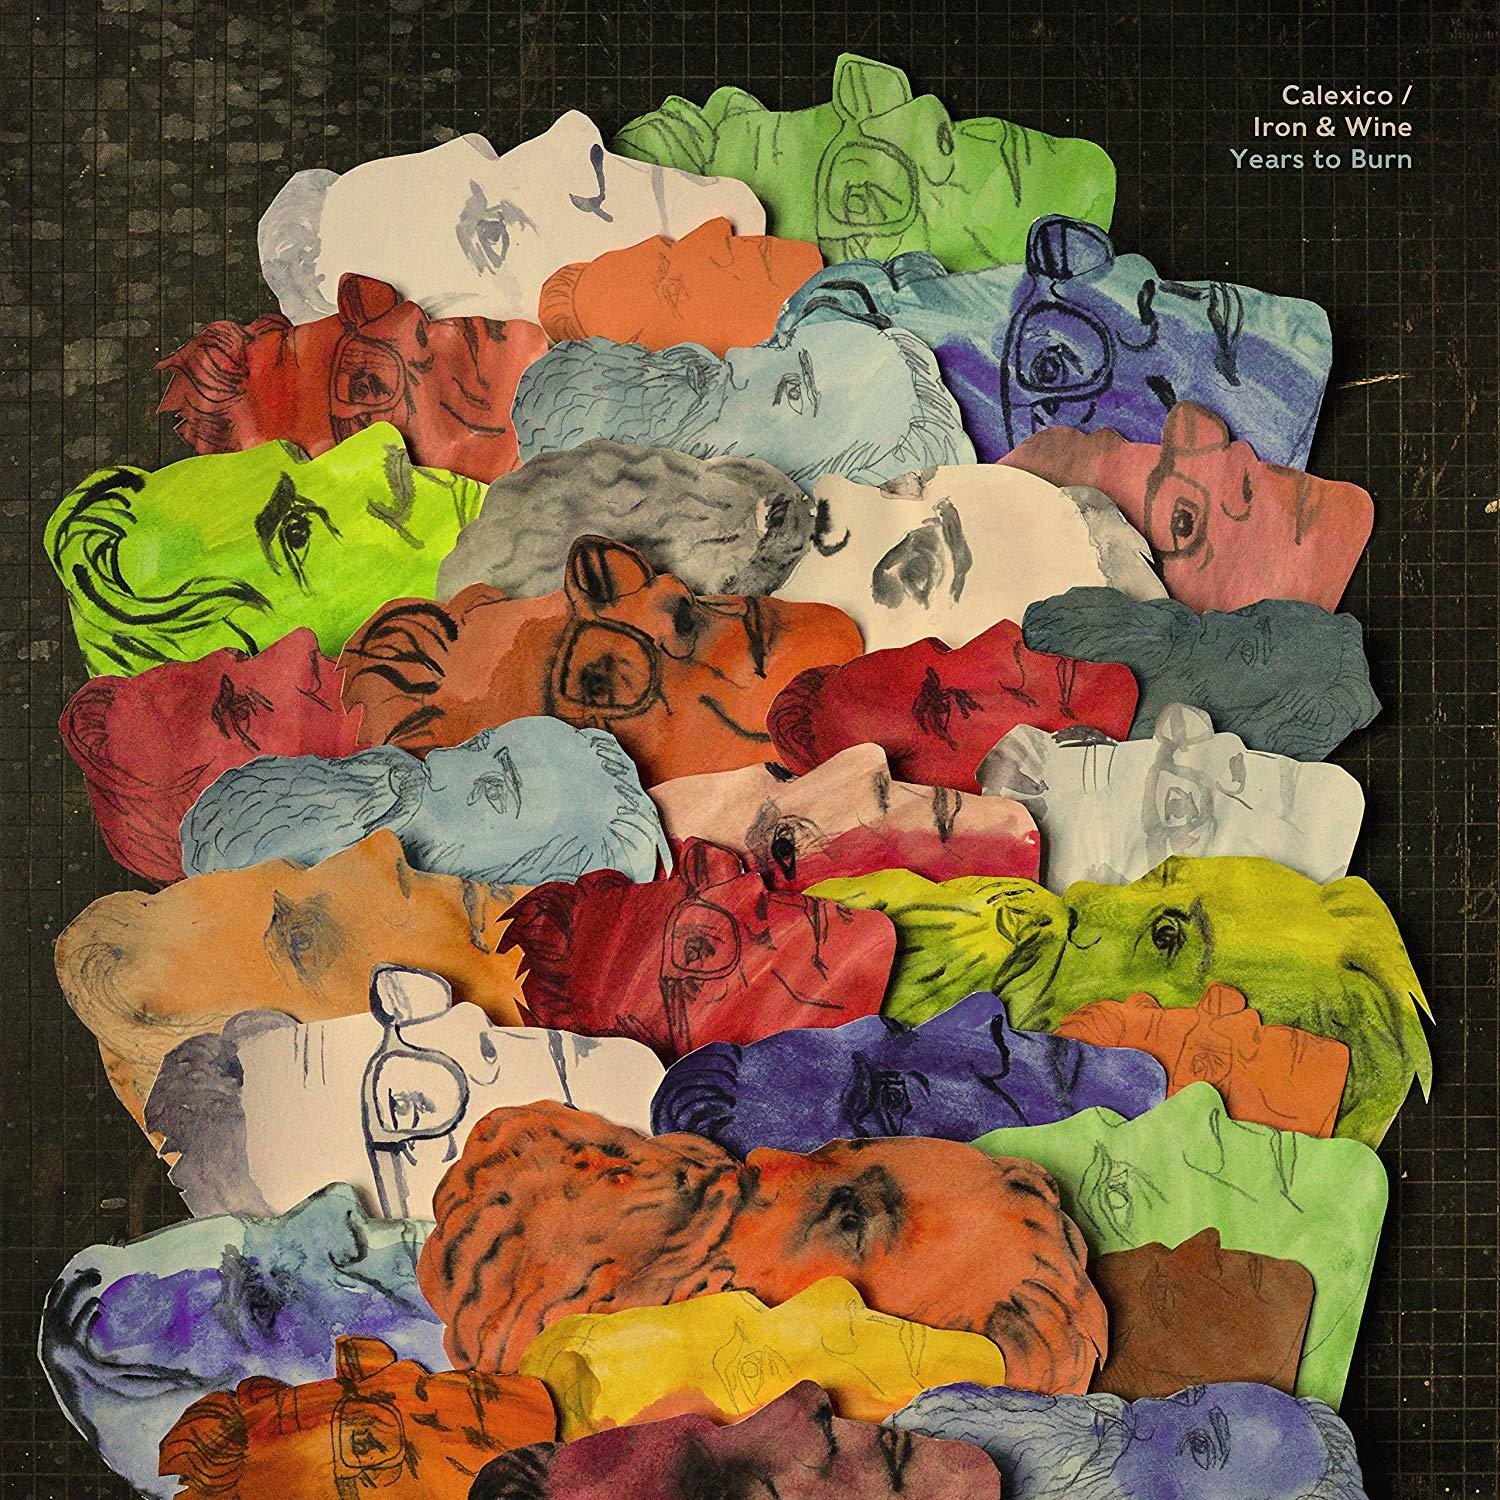 Years To Burn by Calexico/Iron & Wine image